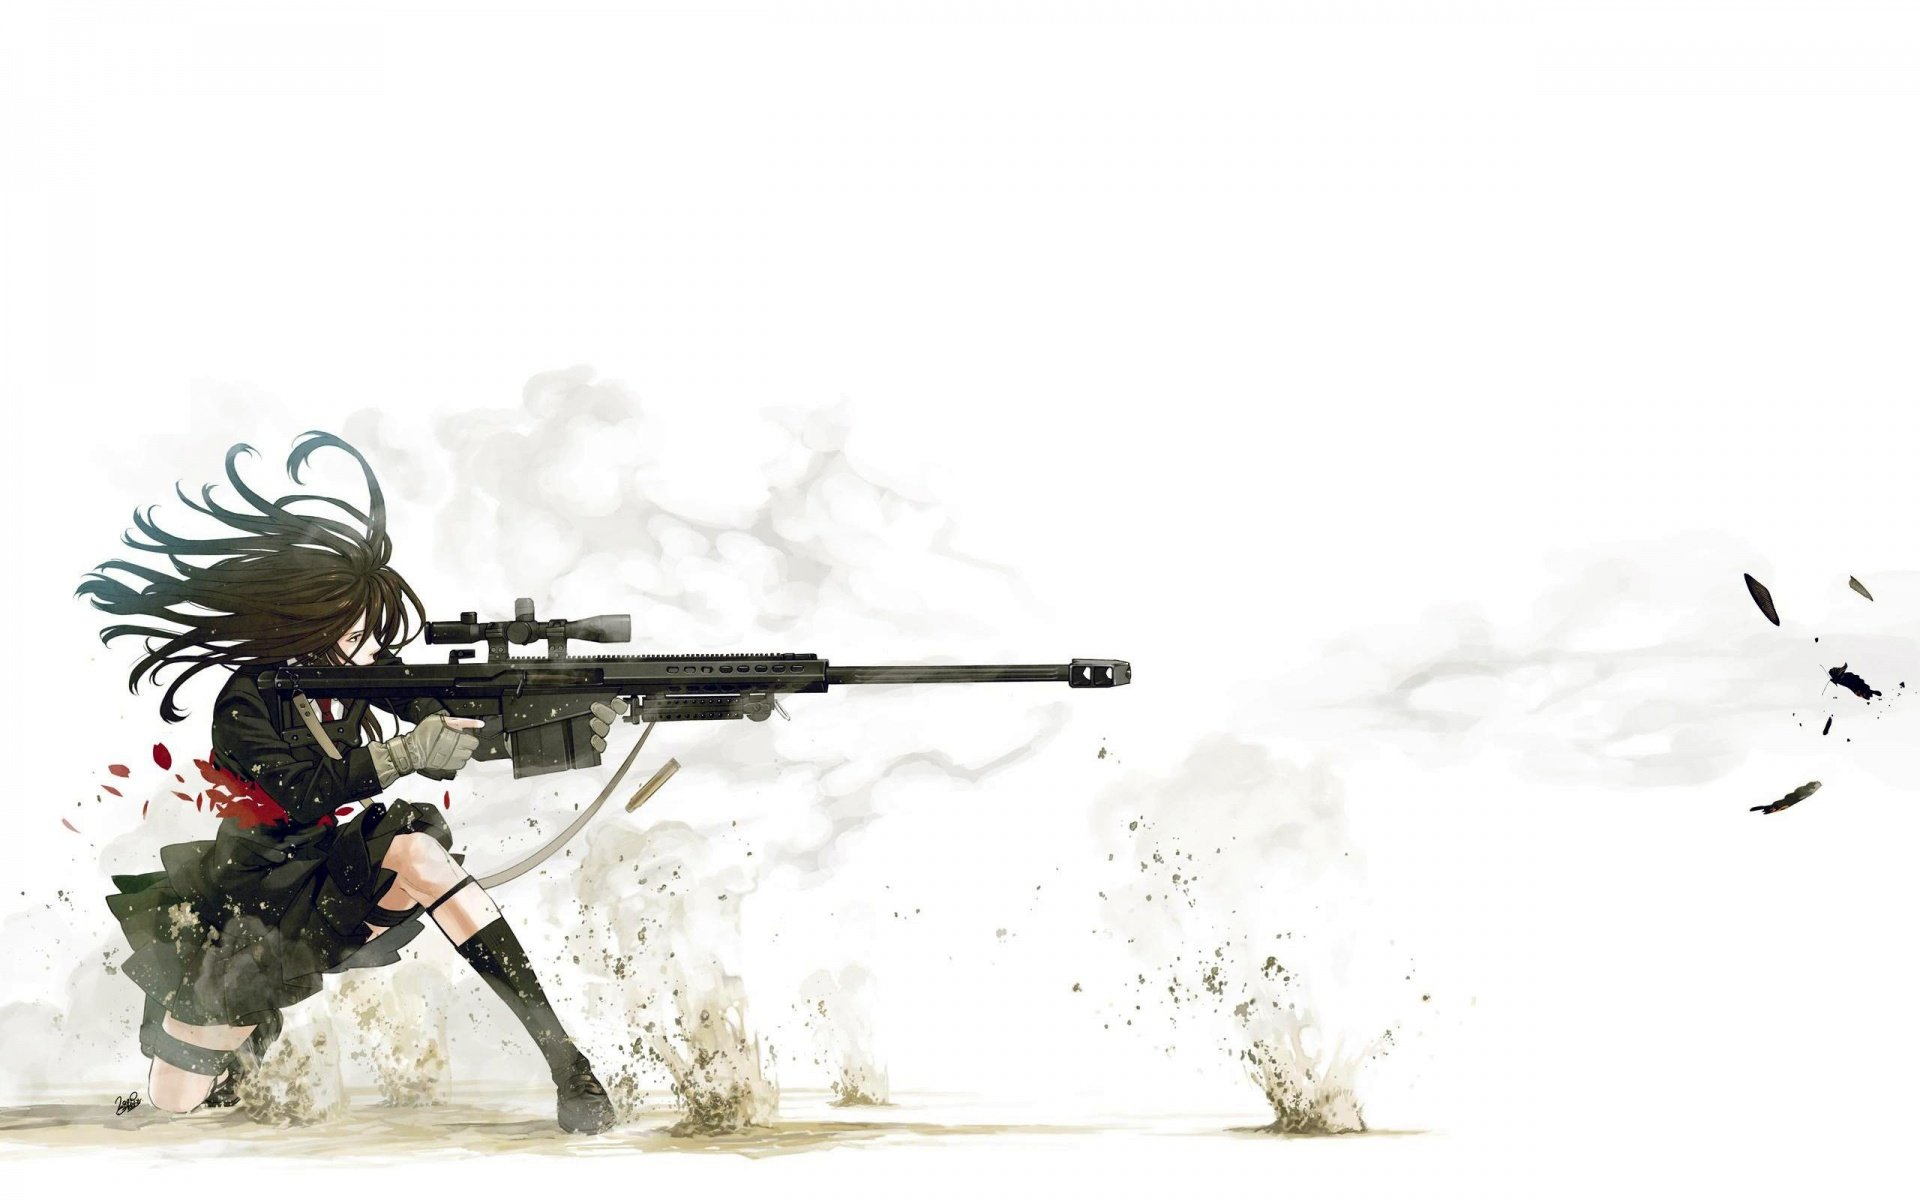 anime sniper wallpaper wallpapers 1920x1200 1920x1200